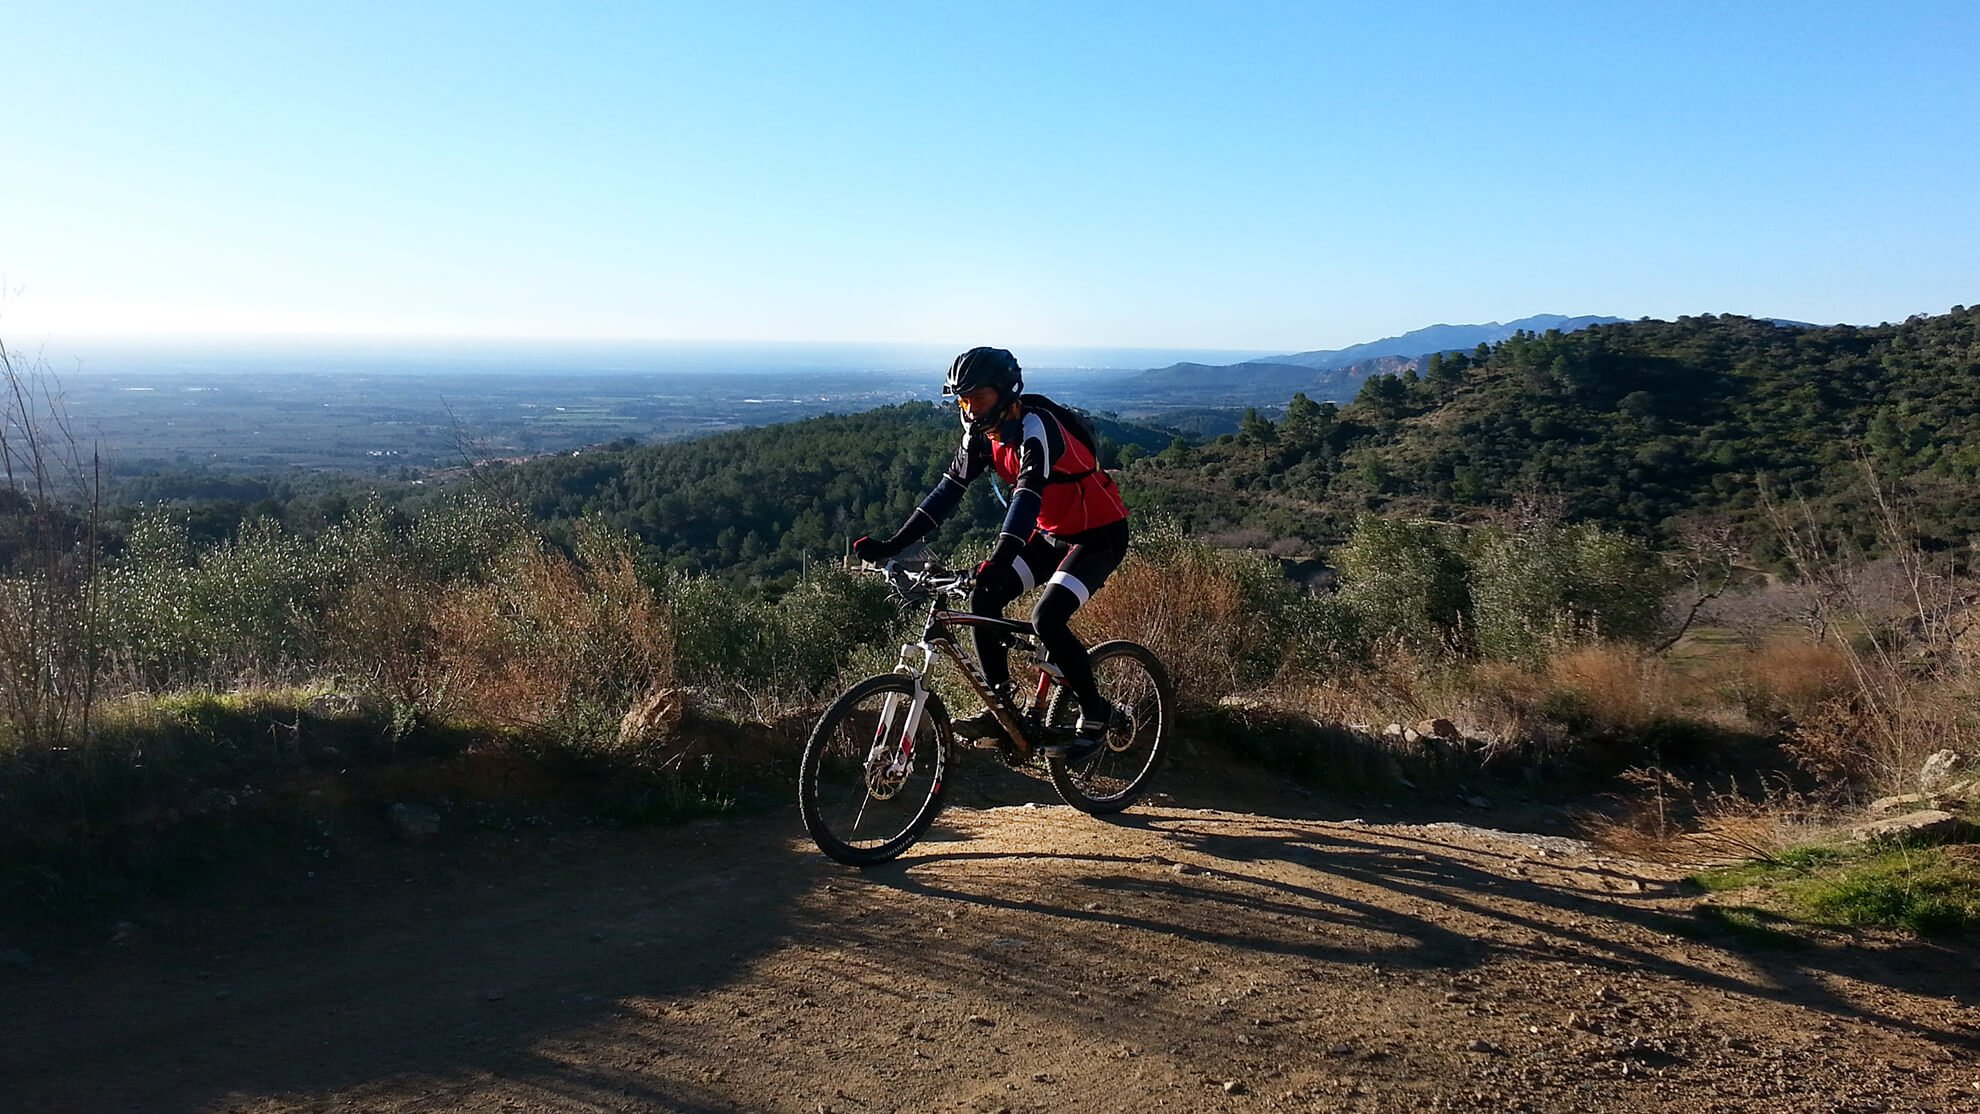 Mountainbike routes in Baix Camp, Gran Fondo Priorat